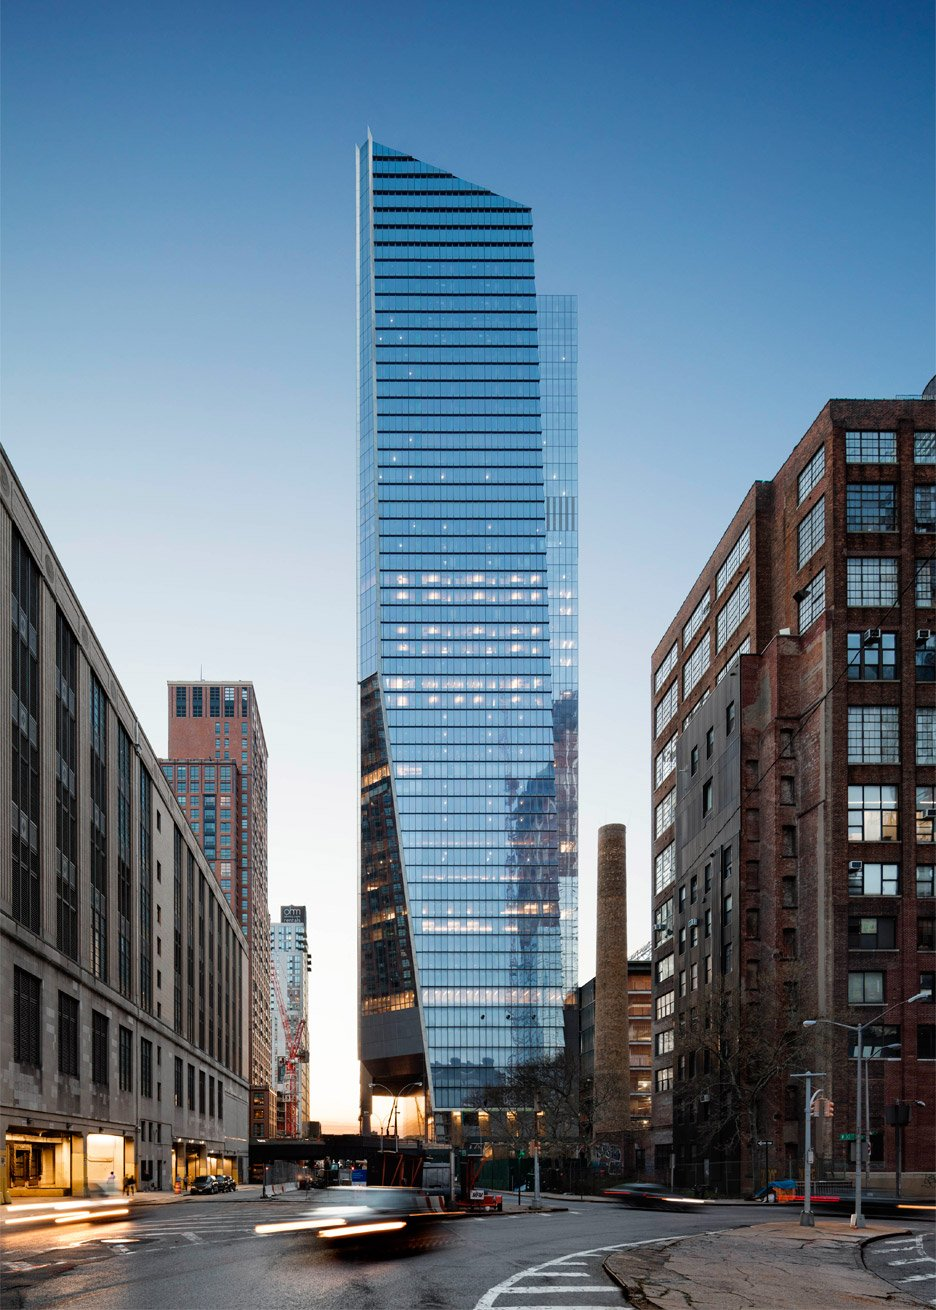 10 Hudson Yards skyscraper by Kohn Pedersen Fox, KPF, for Coach